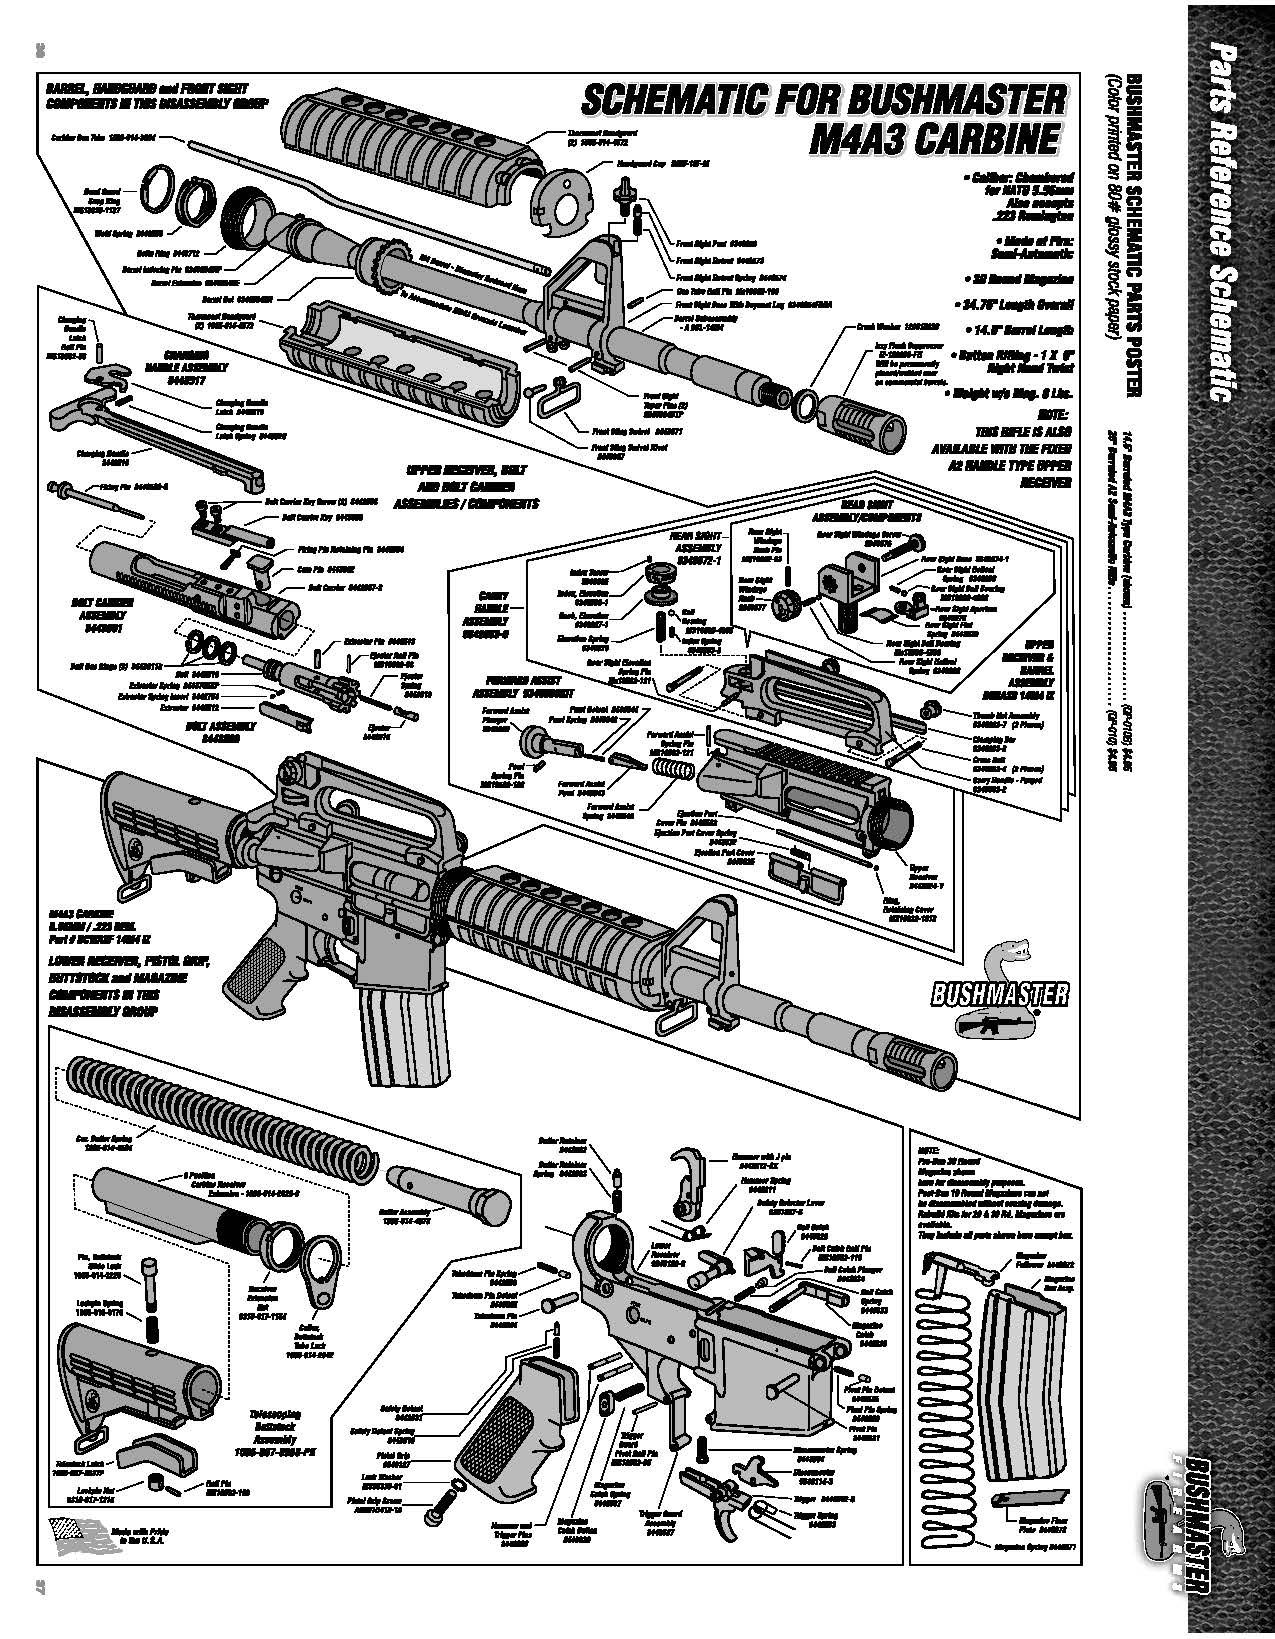 hight resolution of ar 15 schematic parts poster wiring diagram perfomancear 15 parts schematic bushmaster pg